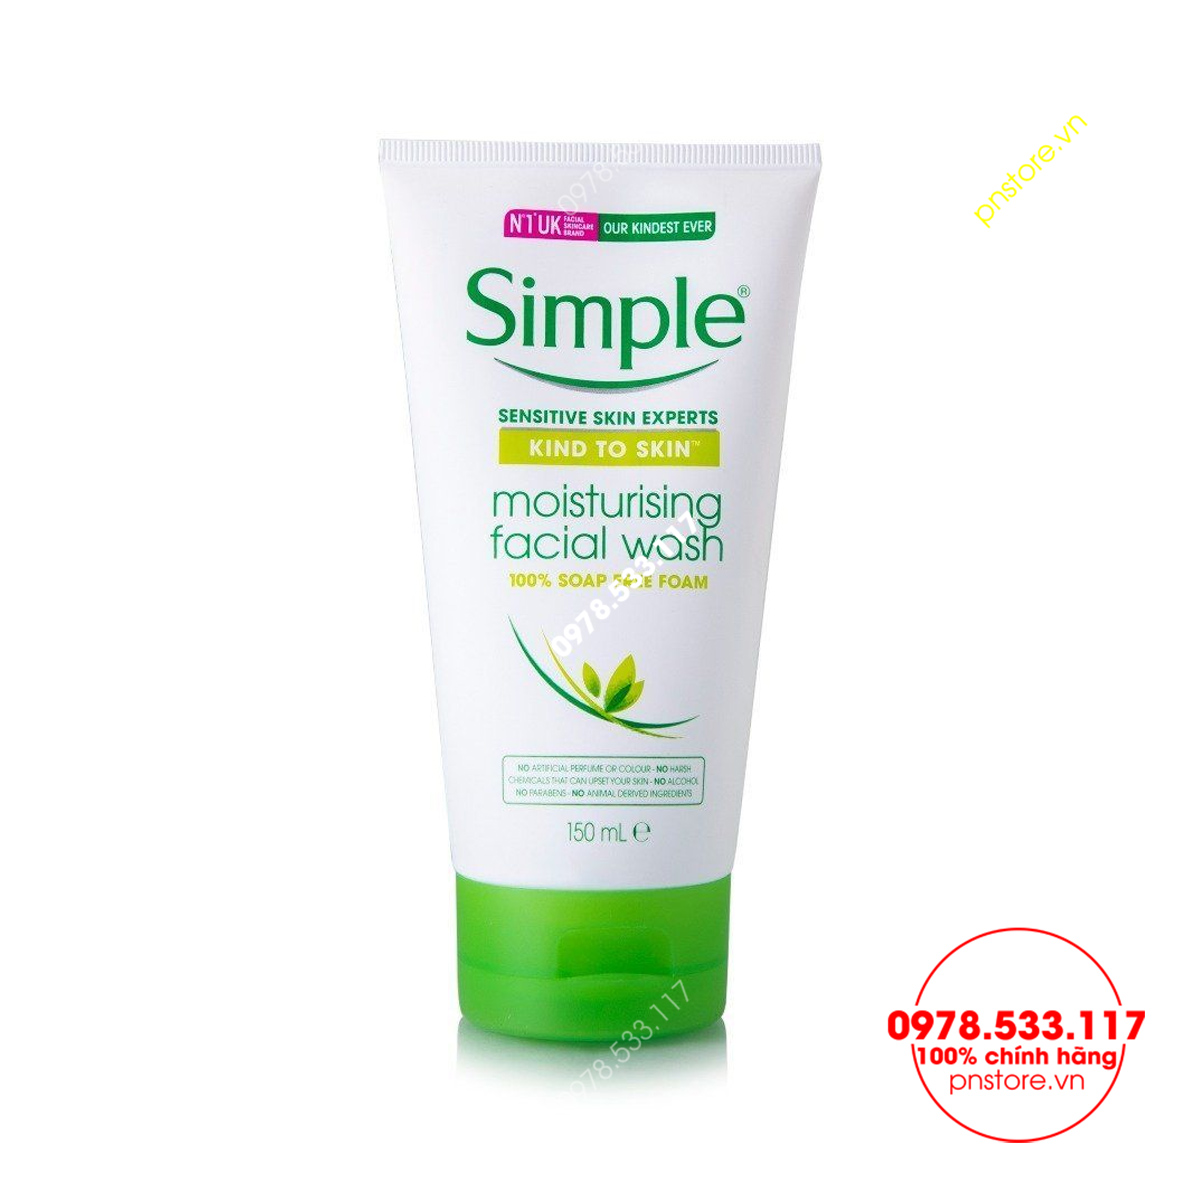 sua-rua-mat-simple-moisturising-facial-wash-150ml-chinh-hang-anh-pn5556